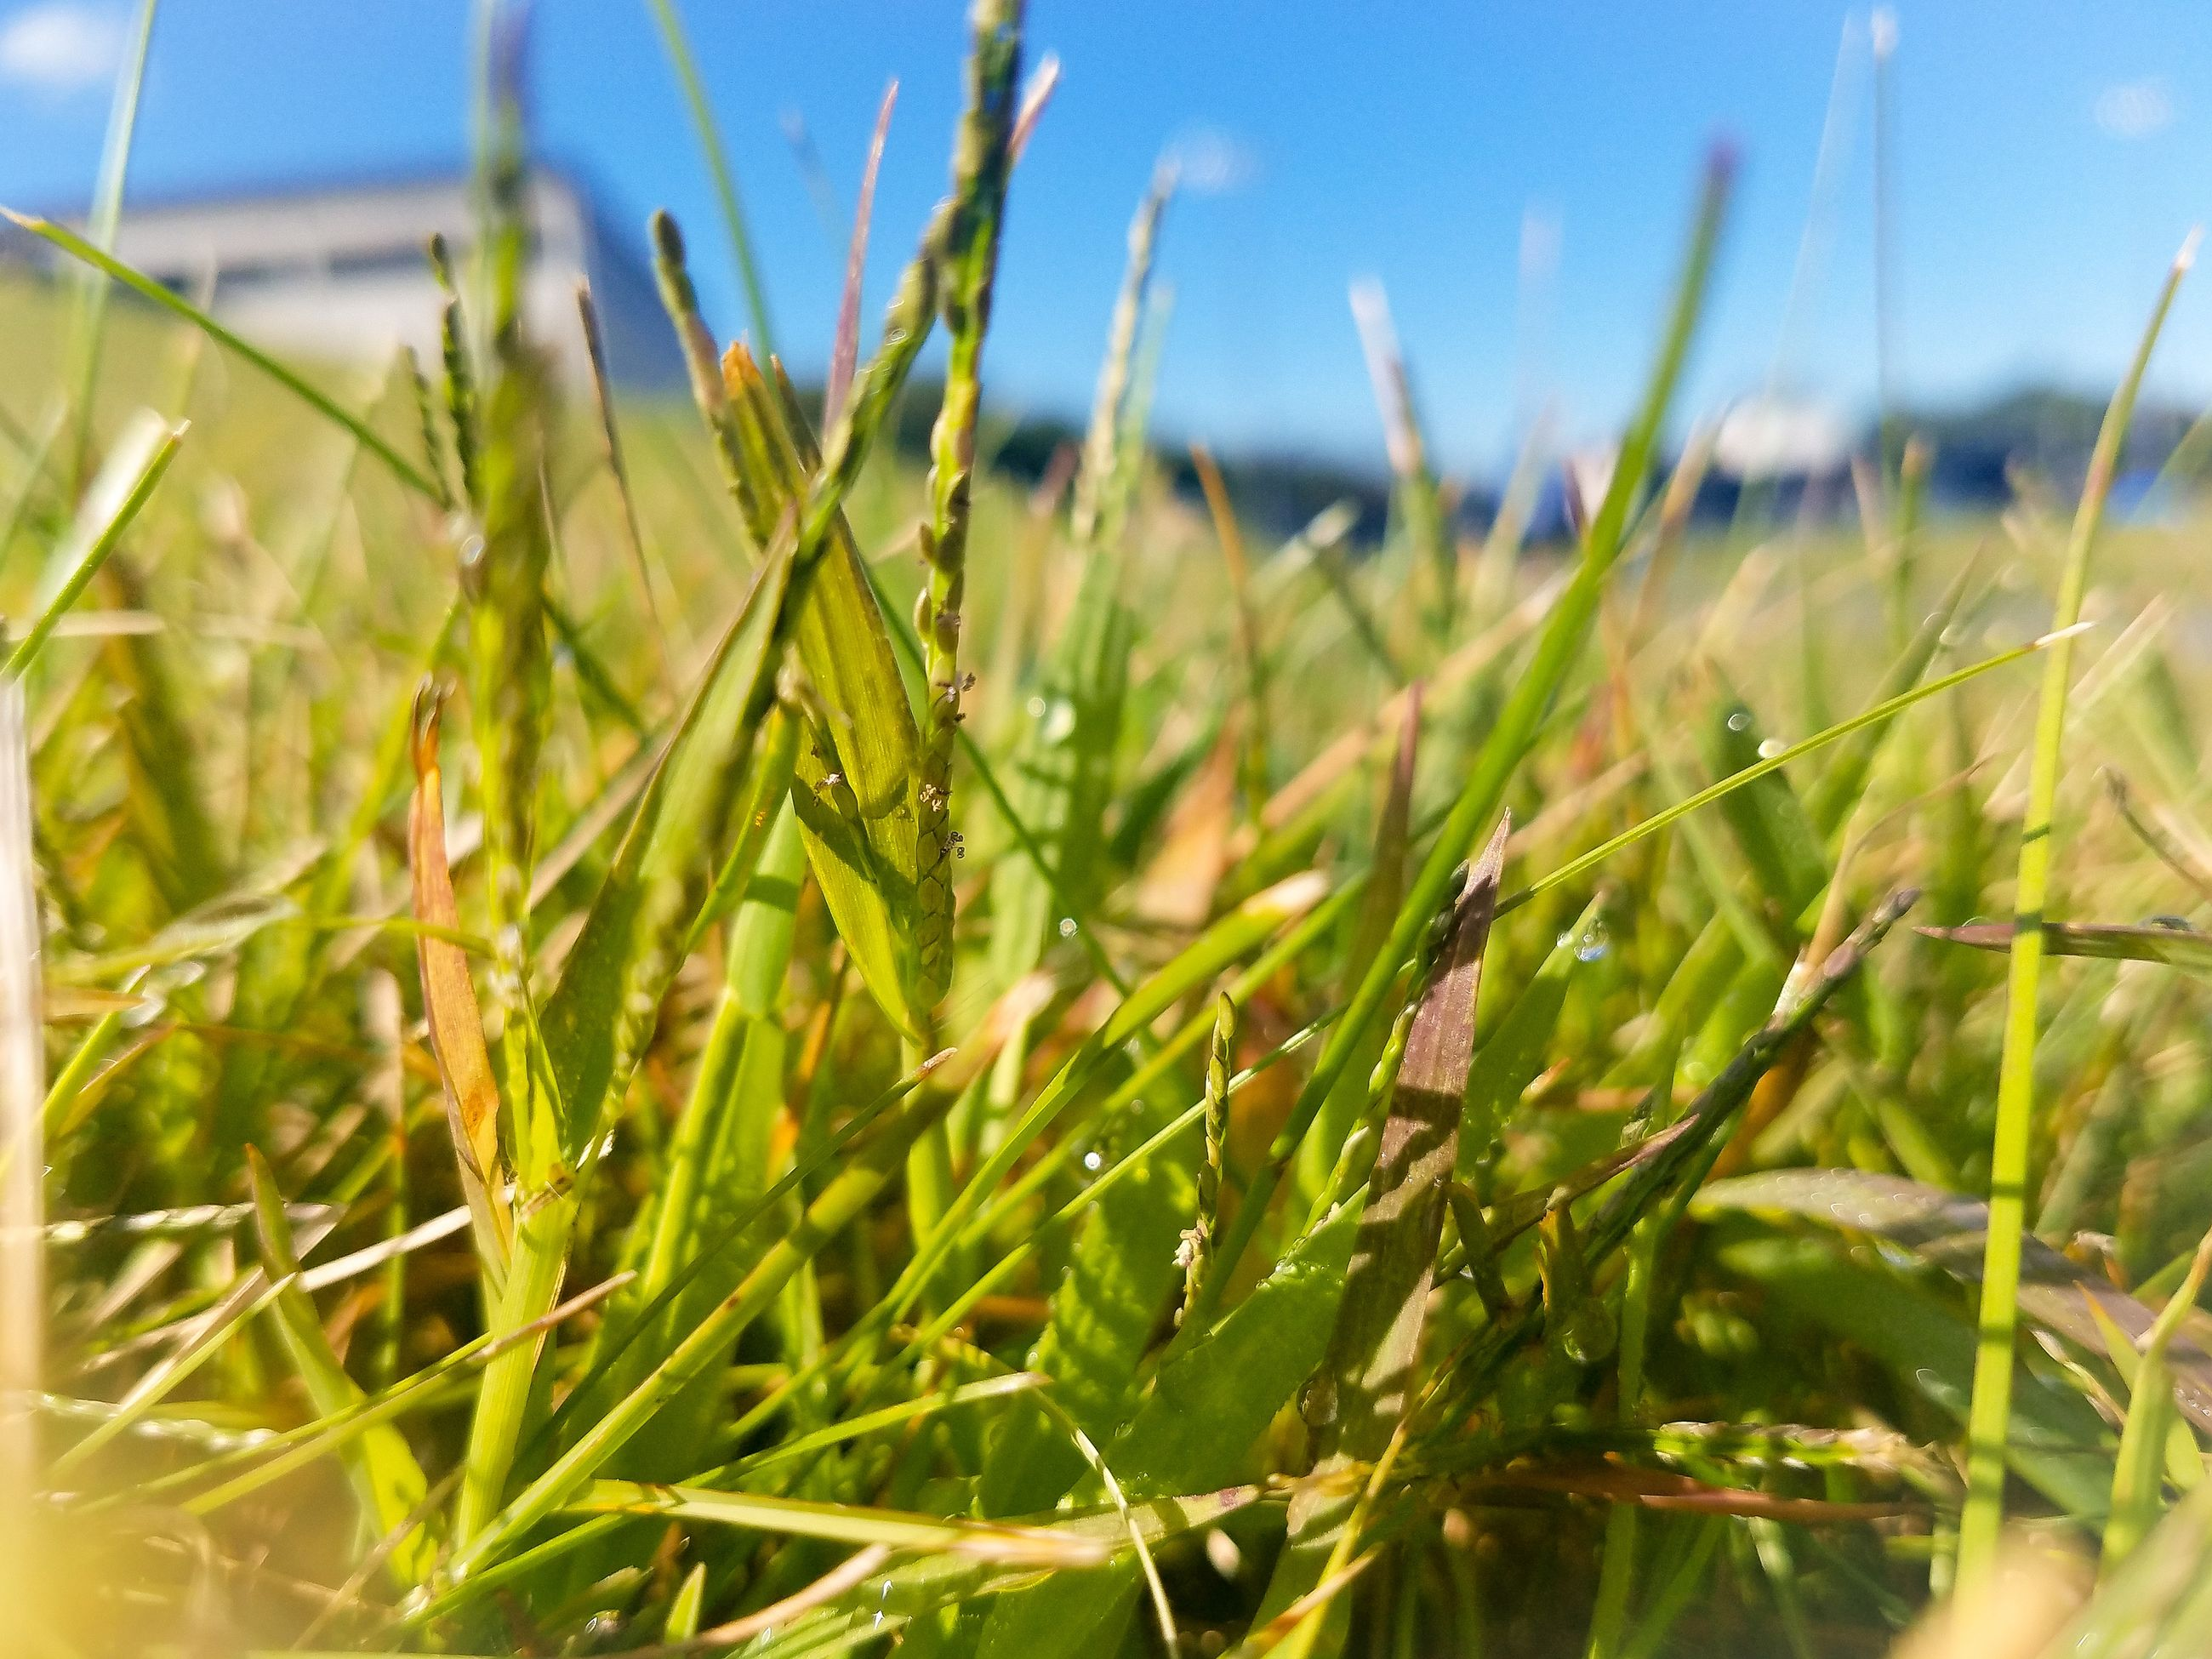 growth, plant, green color, beauty in nature, nature, land, close-up, day, sky, field, focus on foreground, tranquility, no people, grass, selective focus, agriculture, crop, sunlight, outdoors, landscape, blade of grass